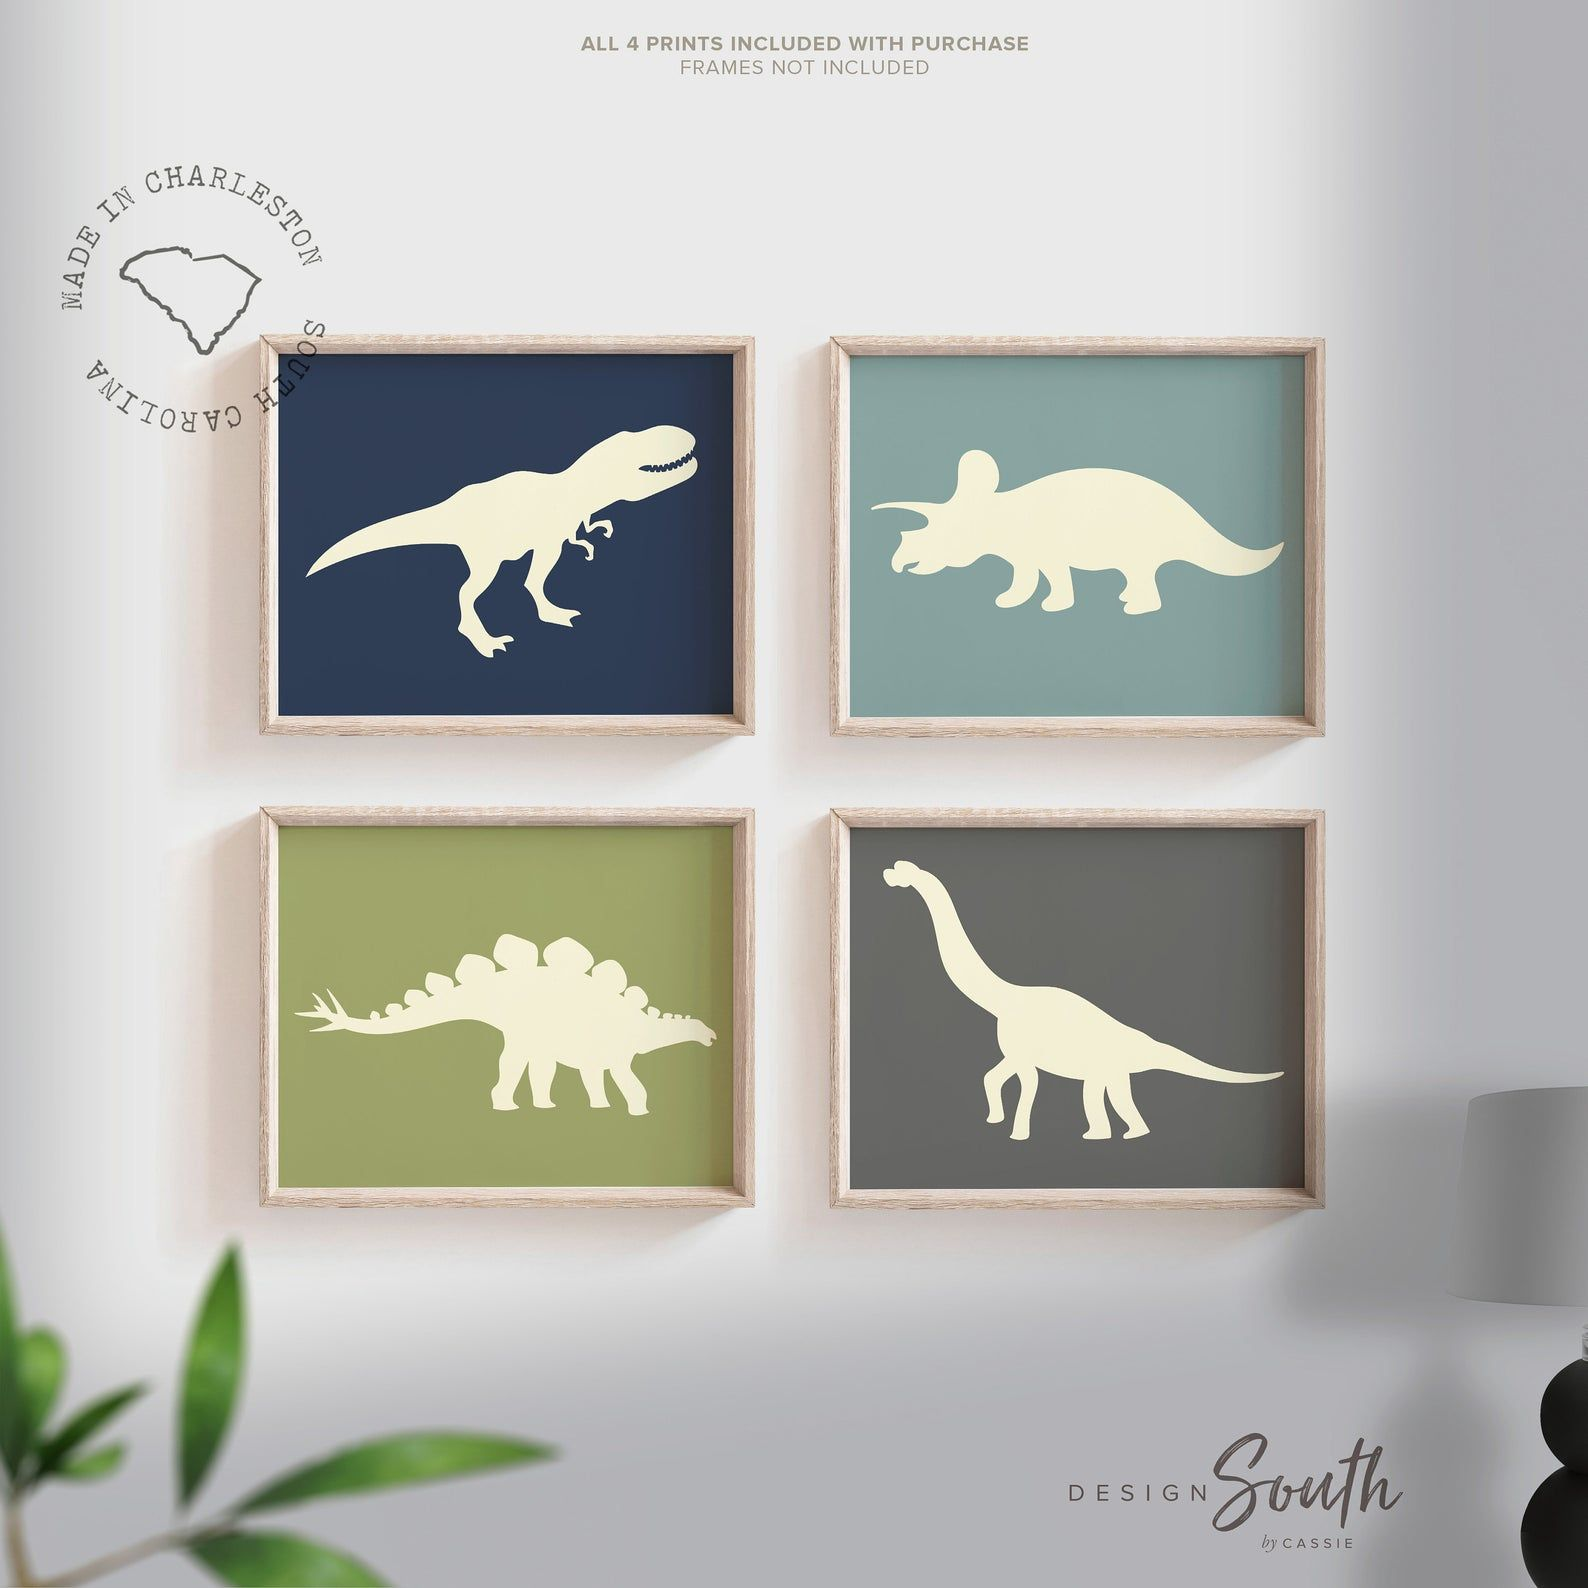 Boys dinosaur bedroom wall art, dinosaur decor for boys, boys dinosaur theme, dinosaur prints, baby boy dinosaurs, dinosaur nursery art boys